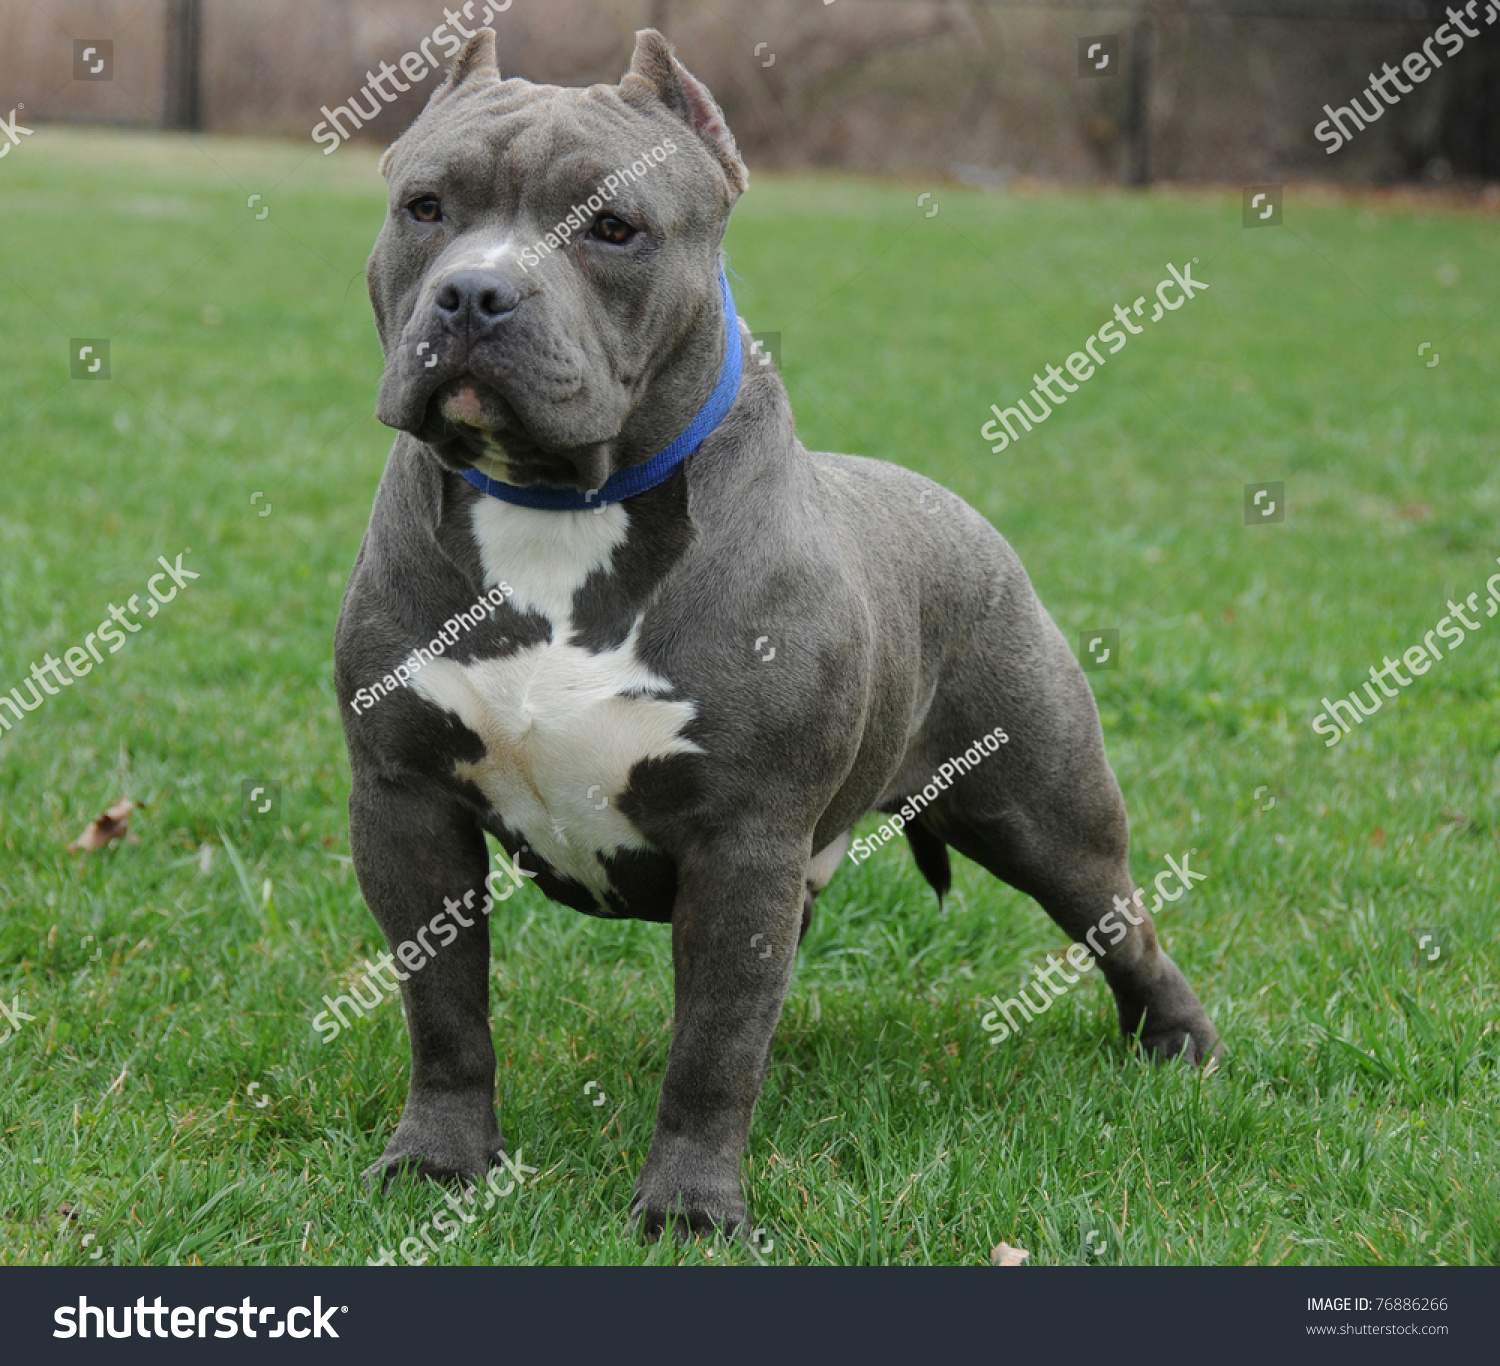 Show Me A Picture Of A Bully Dog